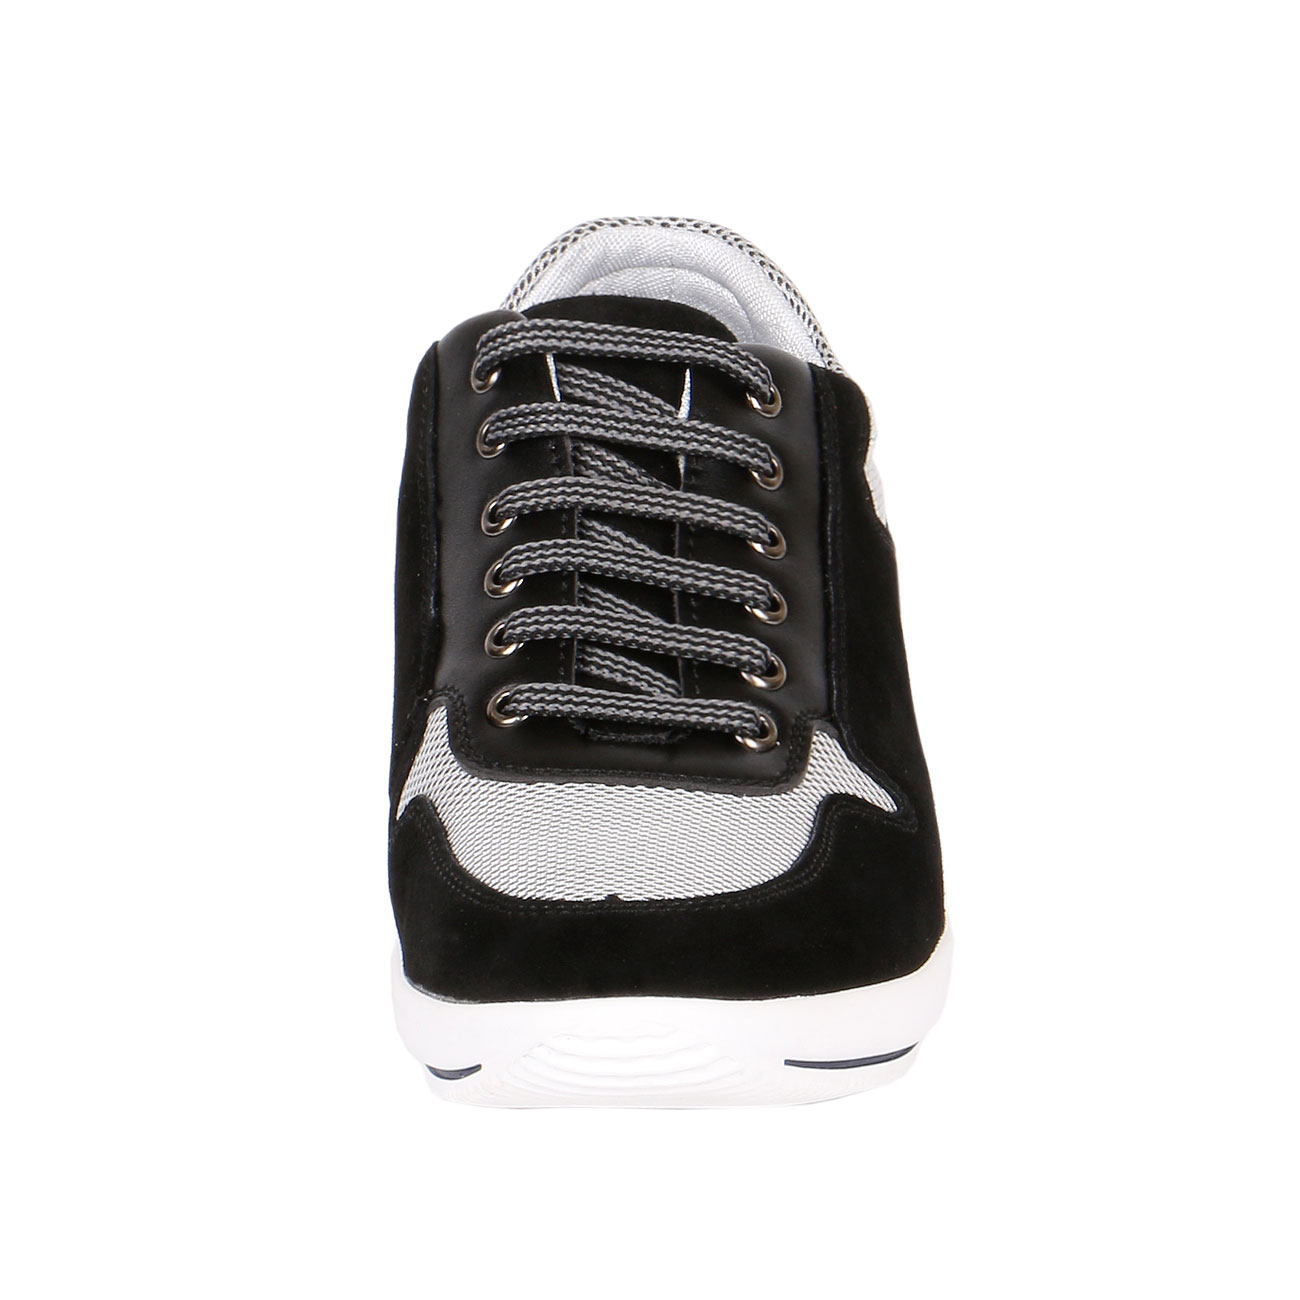 Men's Sneakers Adding Height-view2